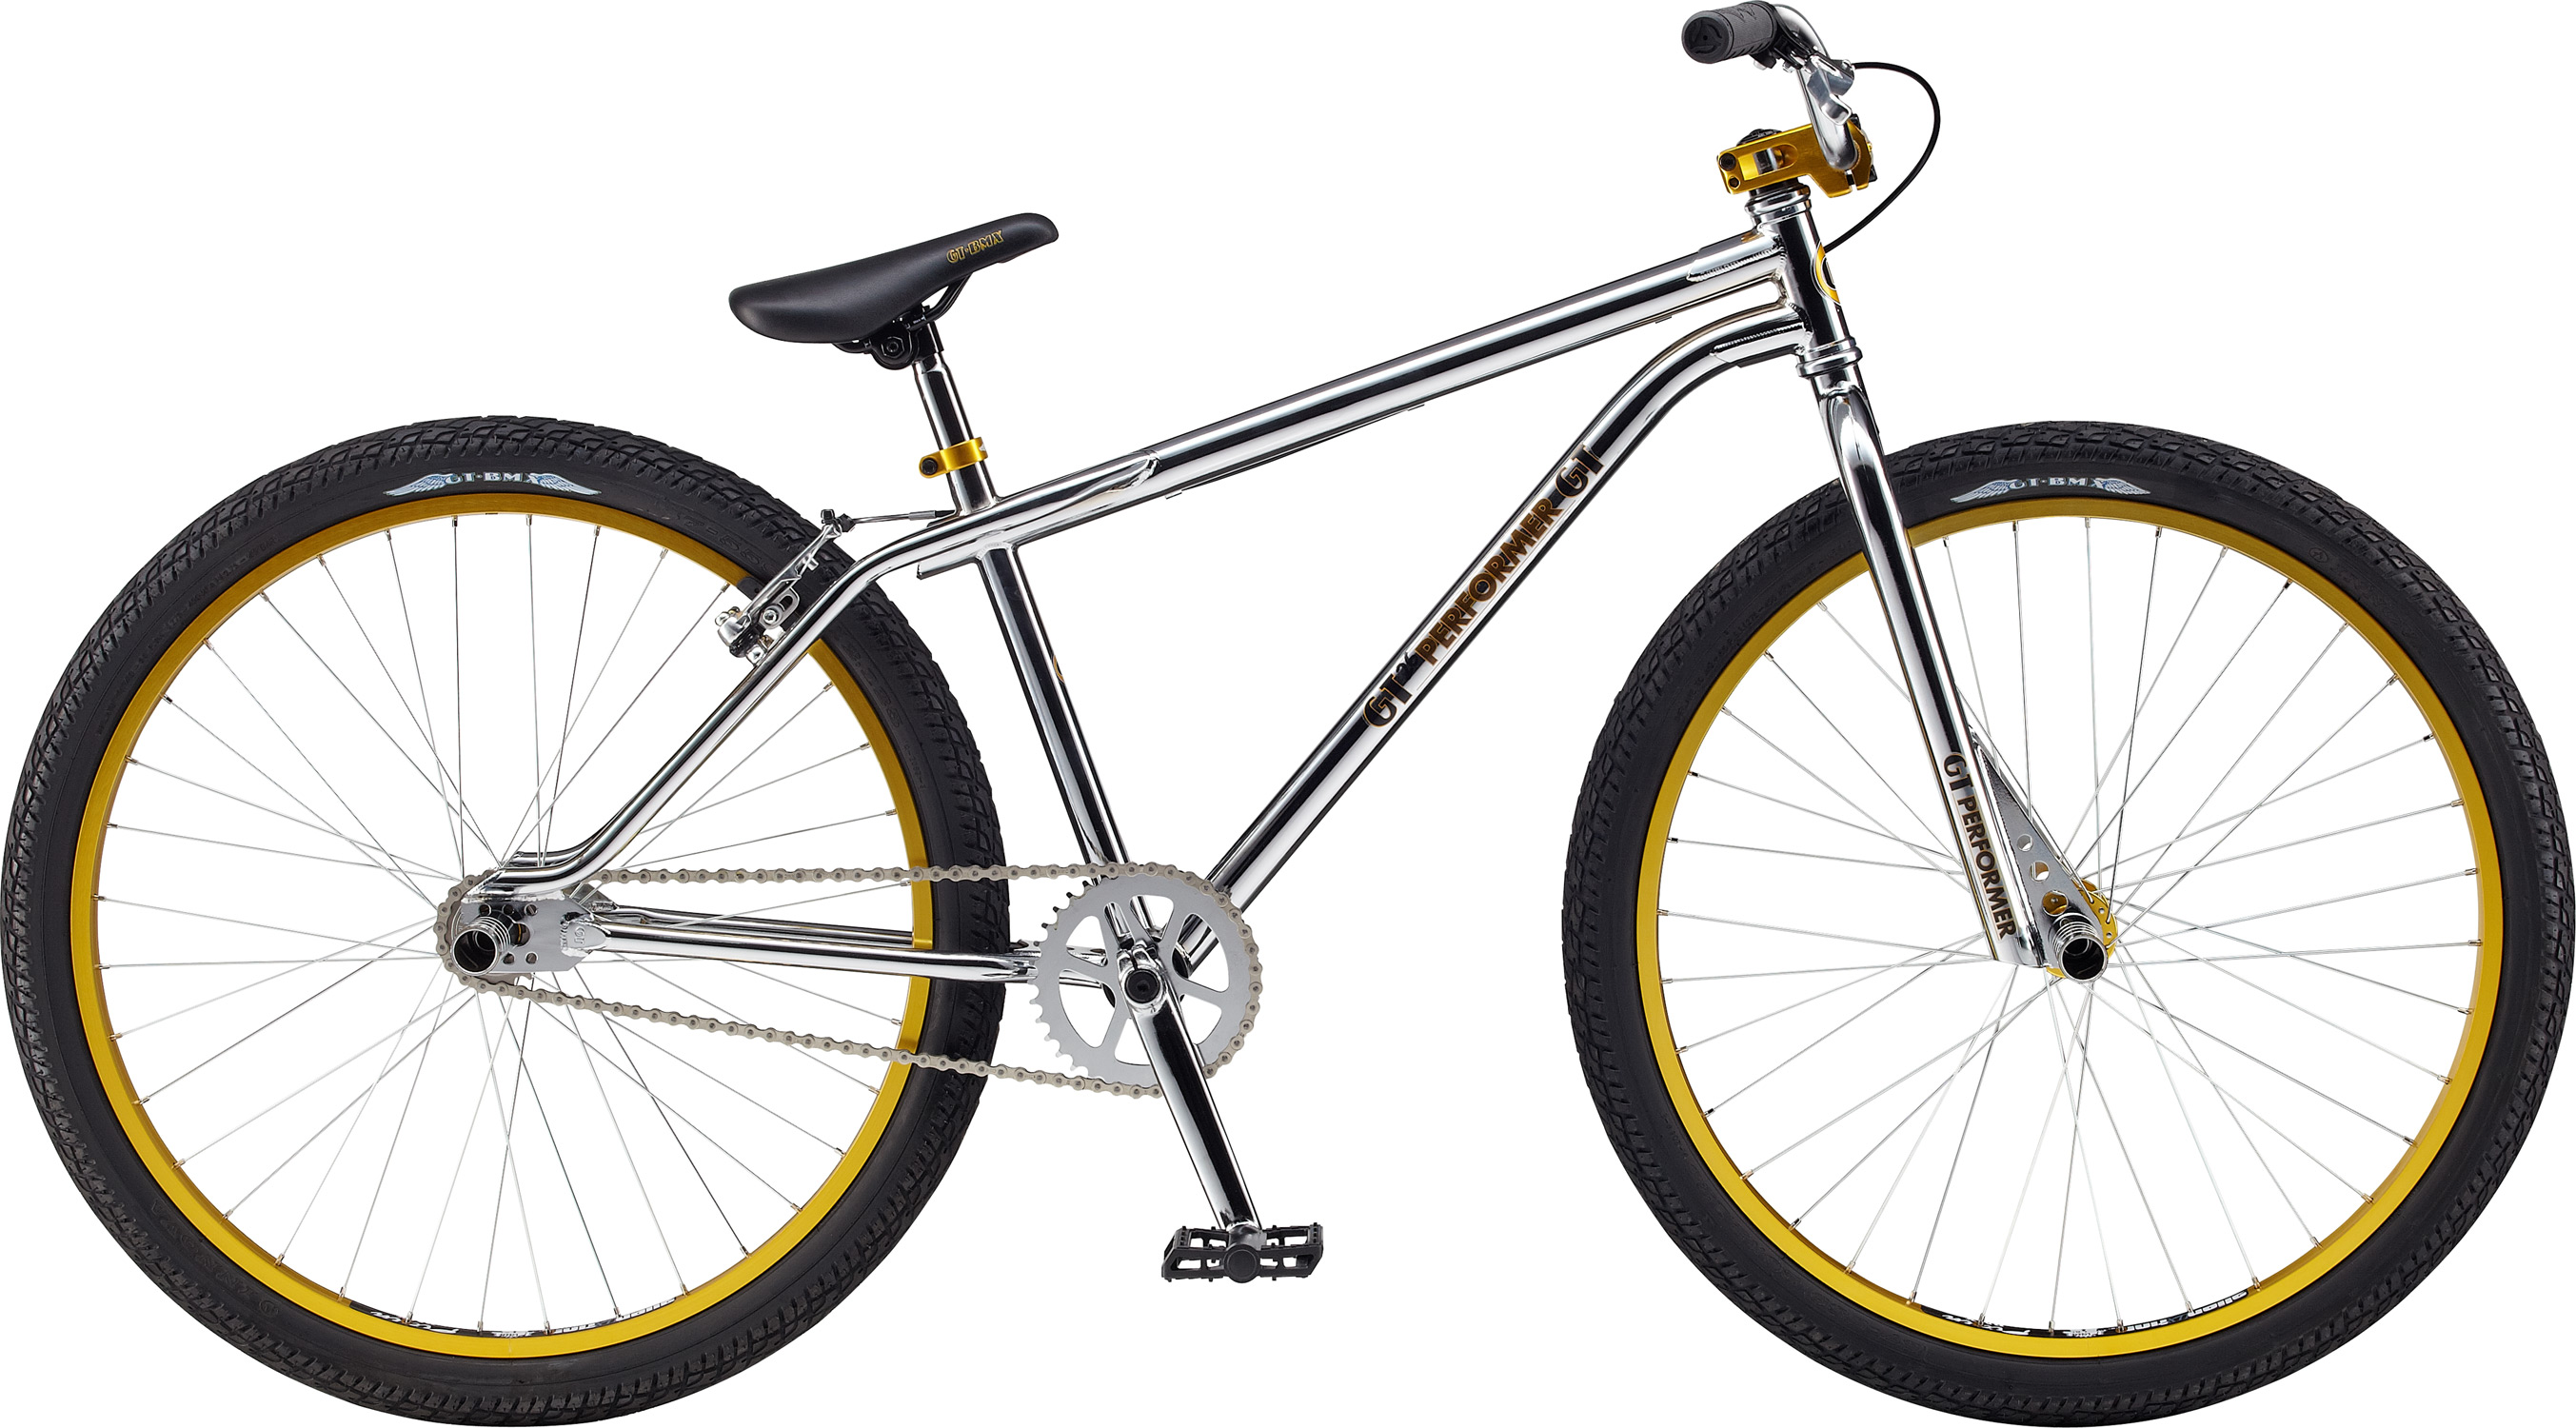 "BMX Key Features of the GT Performer BMX Bike 26"": Colors: Chrome, Blue Frame: 2013 Classic Performer Design w/ Bent D/T And Seat Stand Stays, Full Hi-Ten, American BB , 14mm Dropouts, Seat Stay V-Brake, External 1-1/8"" H/T Fork: GT Classic Performer Design, Cr-Mo 1-1/8"" Steerer, Hi-Ten 31.8 O.D. Blades, 14mm axle Chain: KMC Z410 Crank: GT Tubular Cr-Mo 3Pc., 175mm Arms, Cold Forged Cr-Mo 19mm x 8T Spline Spindle, 34T Steel Chain Wheel GT Design Bottom Bracket: American Loose Ball Bearing Pedals: GT Low Profile Large Size Platform Design, PP Material, Boran Axle Cog Set: 17T Freewheel Rims: Alex Y303 36F/R Hole Tires: GT Freestyle Design 26"" x 2.1"" F/R Hubs: GT Alloy Mohawk 36H Rear Hub: GT Alloy Mohawk, Flip/Flop FW, Aluminum, 36H, 110mm Old, Black Anodize, 22.2mm Washers, 14mm Axle CP Nuts, GT Logos Spokes: 14G Nipples: Brass Brake Levers: Tektro 313A Alloy V-Brake Handlebar: GT Perfromer 100% Cr-Mo; 690mm Width, 100mm Rise, 9 Degree Sweep,32 Degree Tip, Classic Performer Cross Bar Design 22.2MM Cross Bar OD Stem: GT 100% Cold Forged 1-1/8"" Machined GT Logo On Front Cap, 50mm Ext Grips: GT Wings Logo 130mm Single Compound Headset: 1-1/8"" Threadless, Steel Saddle: GT Classic Performer Design Seat Post: Steel, 25.4mm x 200mm Seat Clamp: Alloy, single bolt Extras: Two pair Cold Forged Steel Pegs - $349.95"